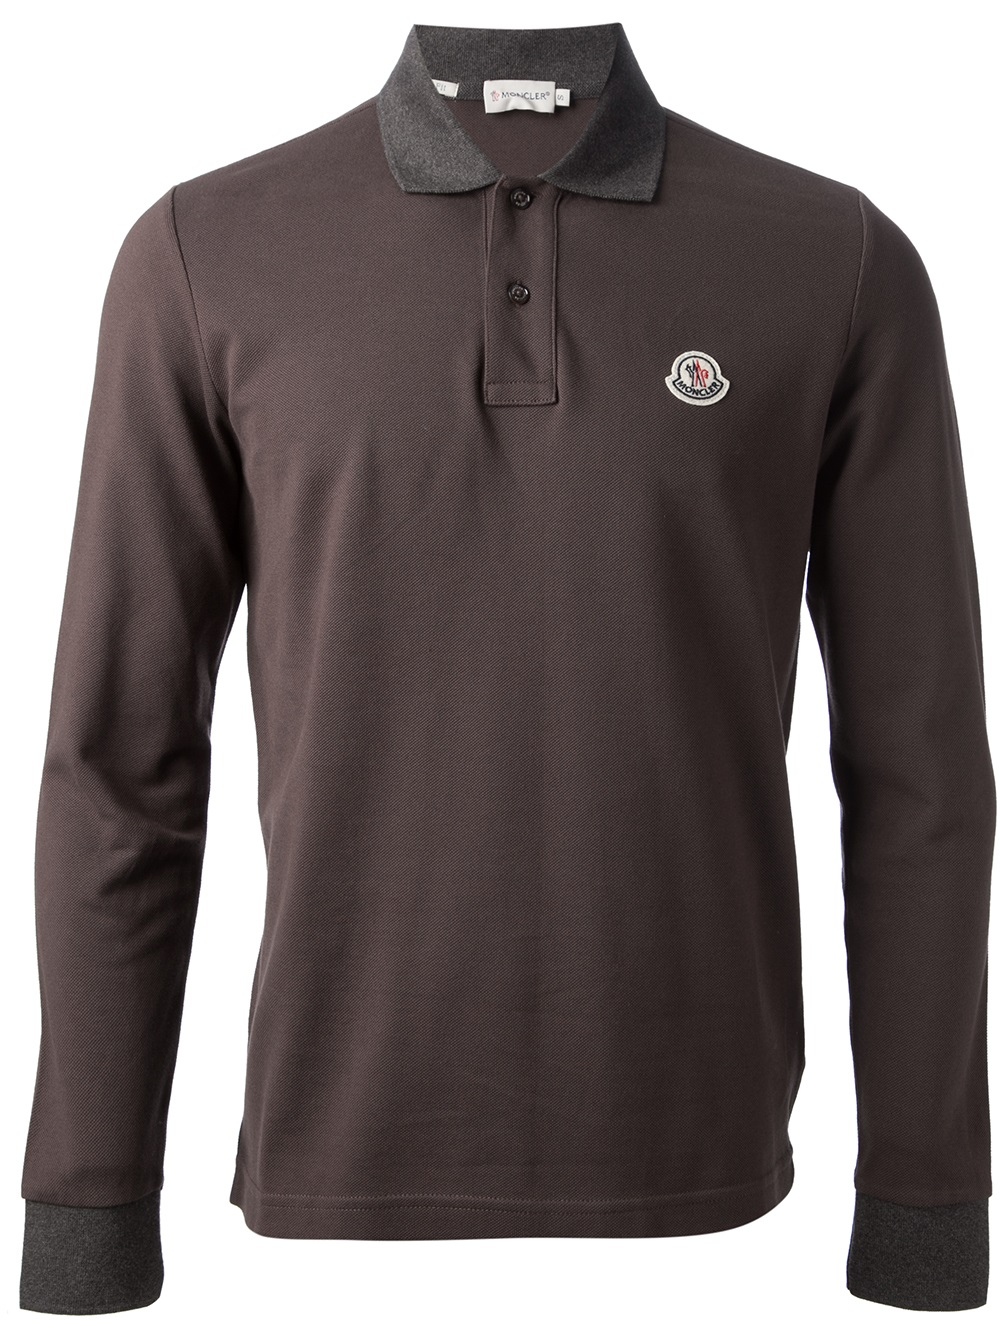 Moncler Long Sleeve Polo Shirt In Brown For Men Lyst